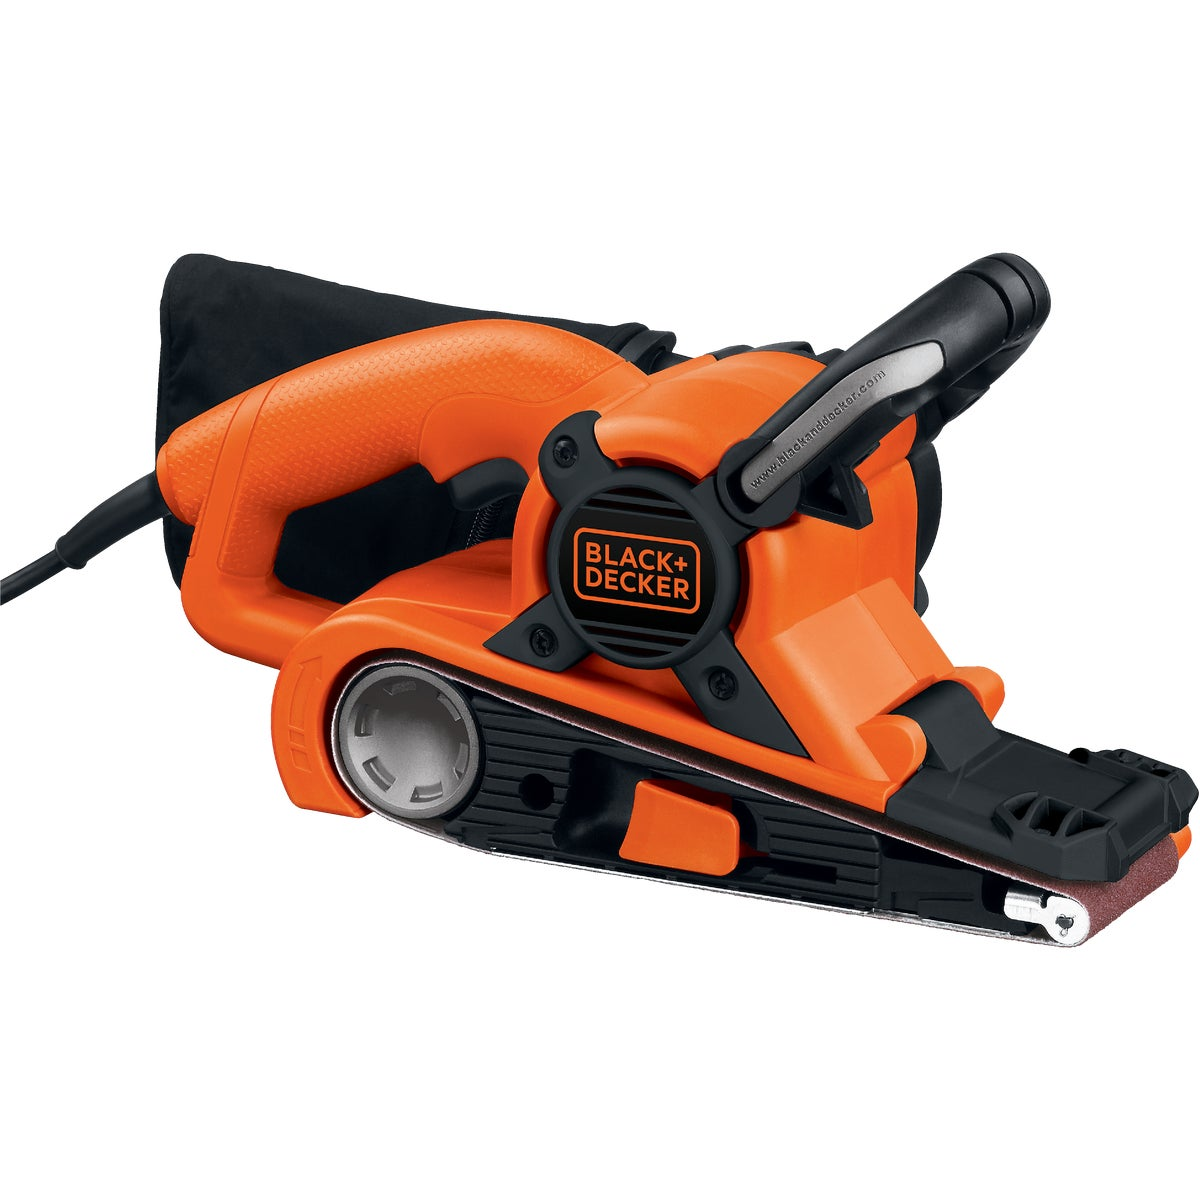 3X21 BELT SANDER - DS321 by Black & Decker